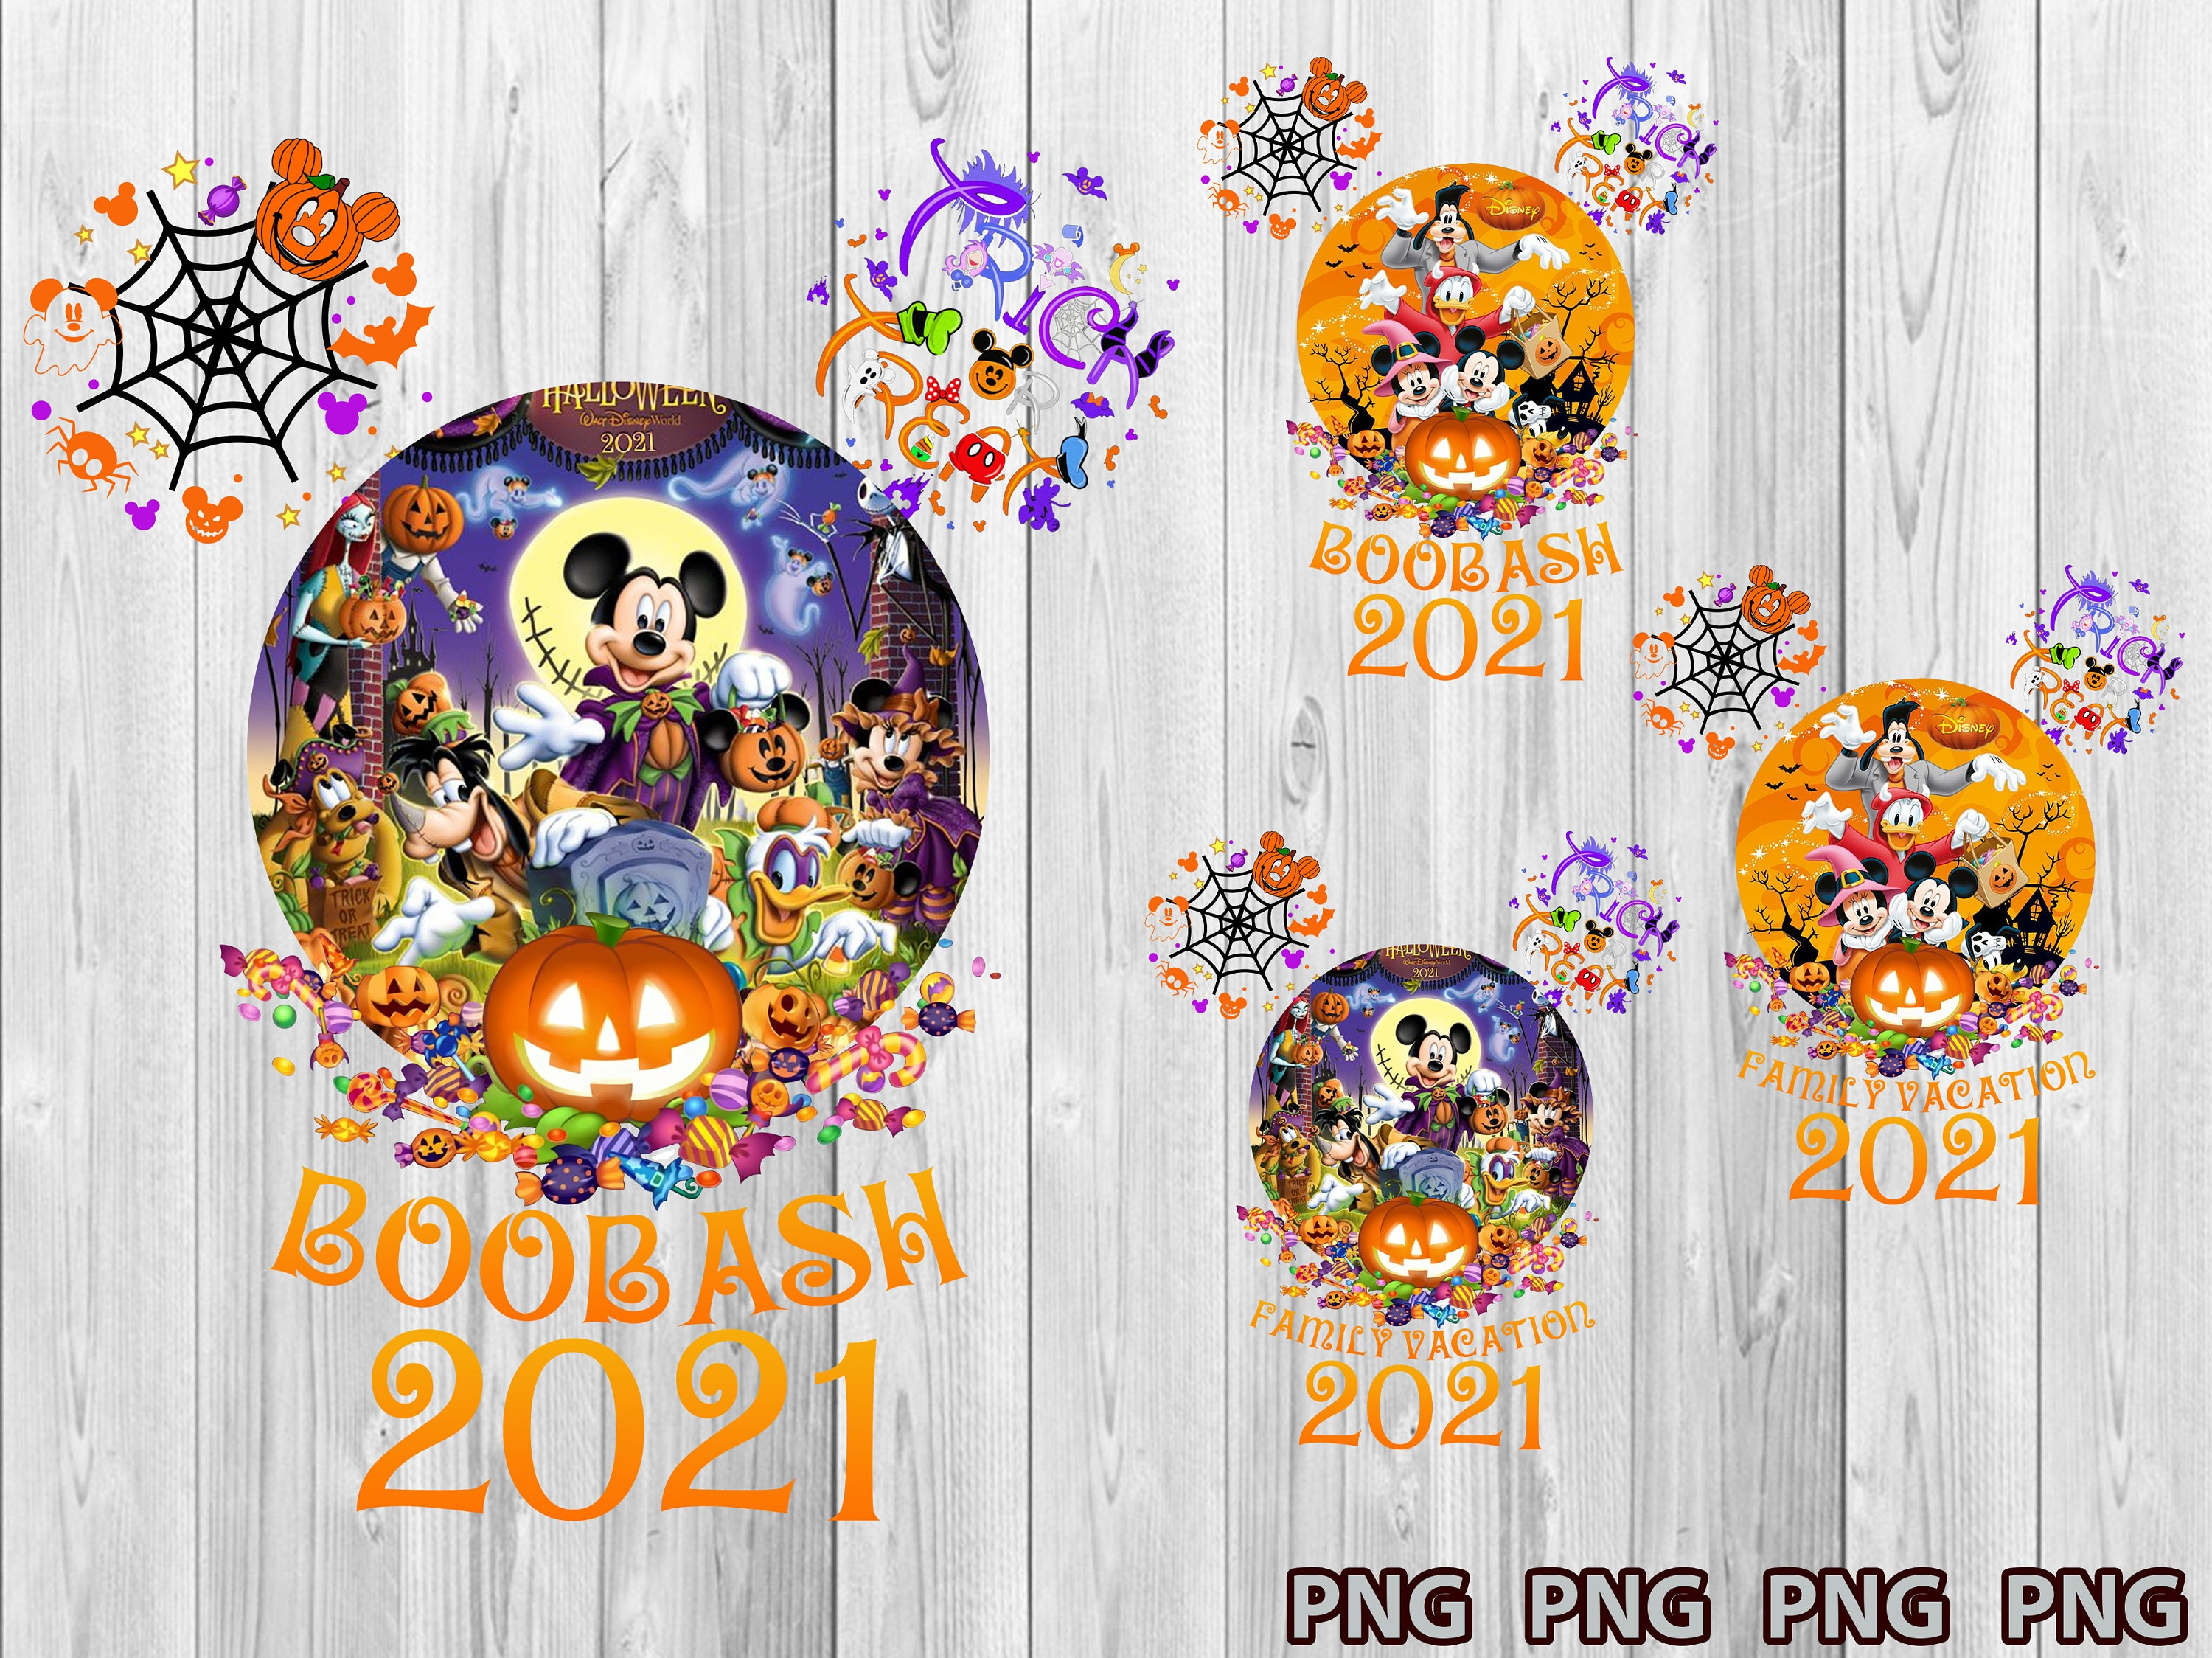 Mickey Trick or Treat Png, Mickey Head With Castle Png, Halloween Family Png, Mickey Halloween Png, Mickeys Not So Scary Halloween Png